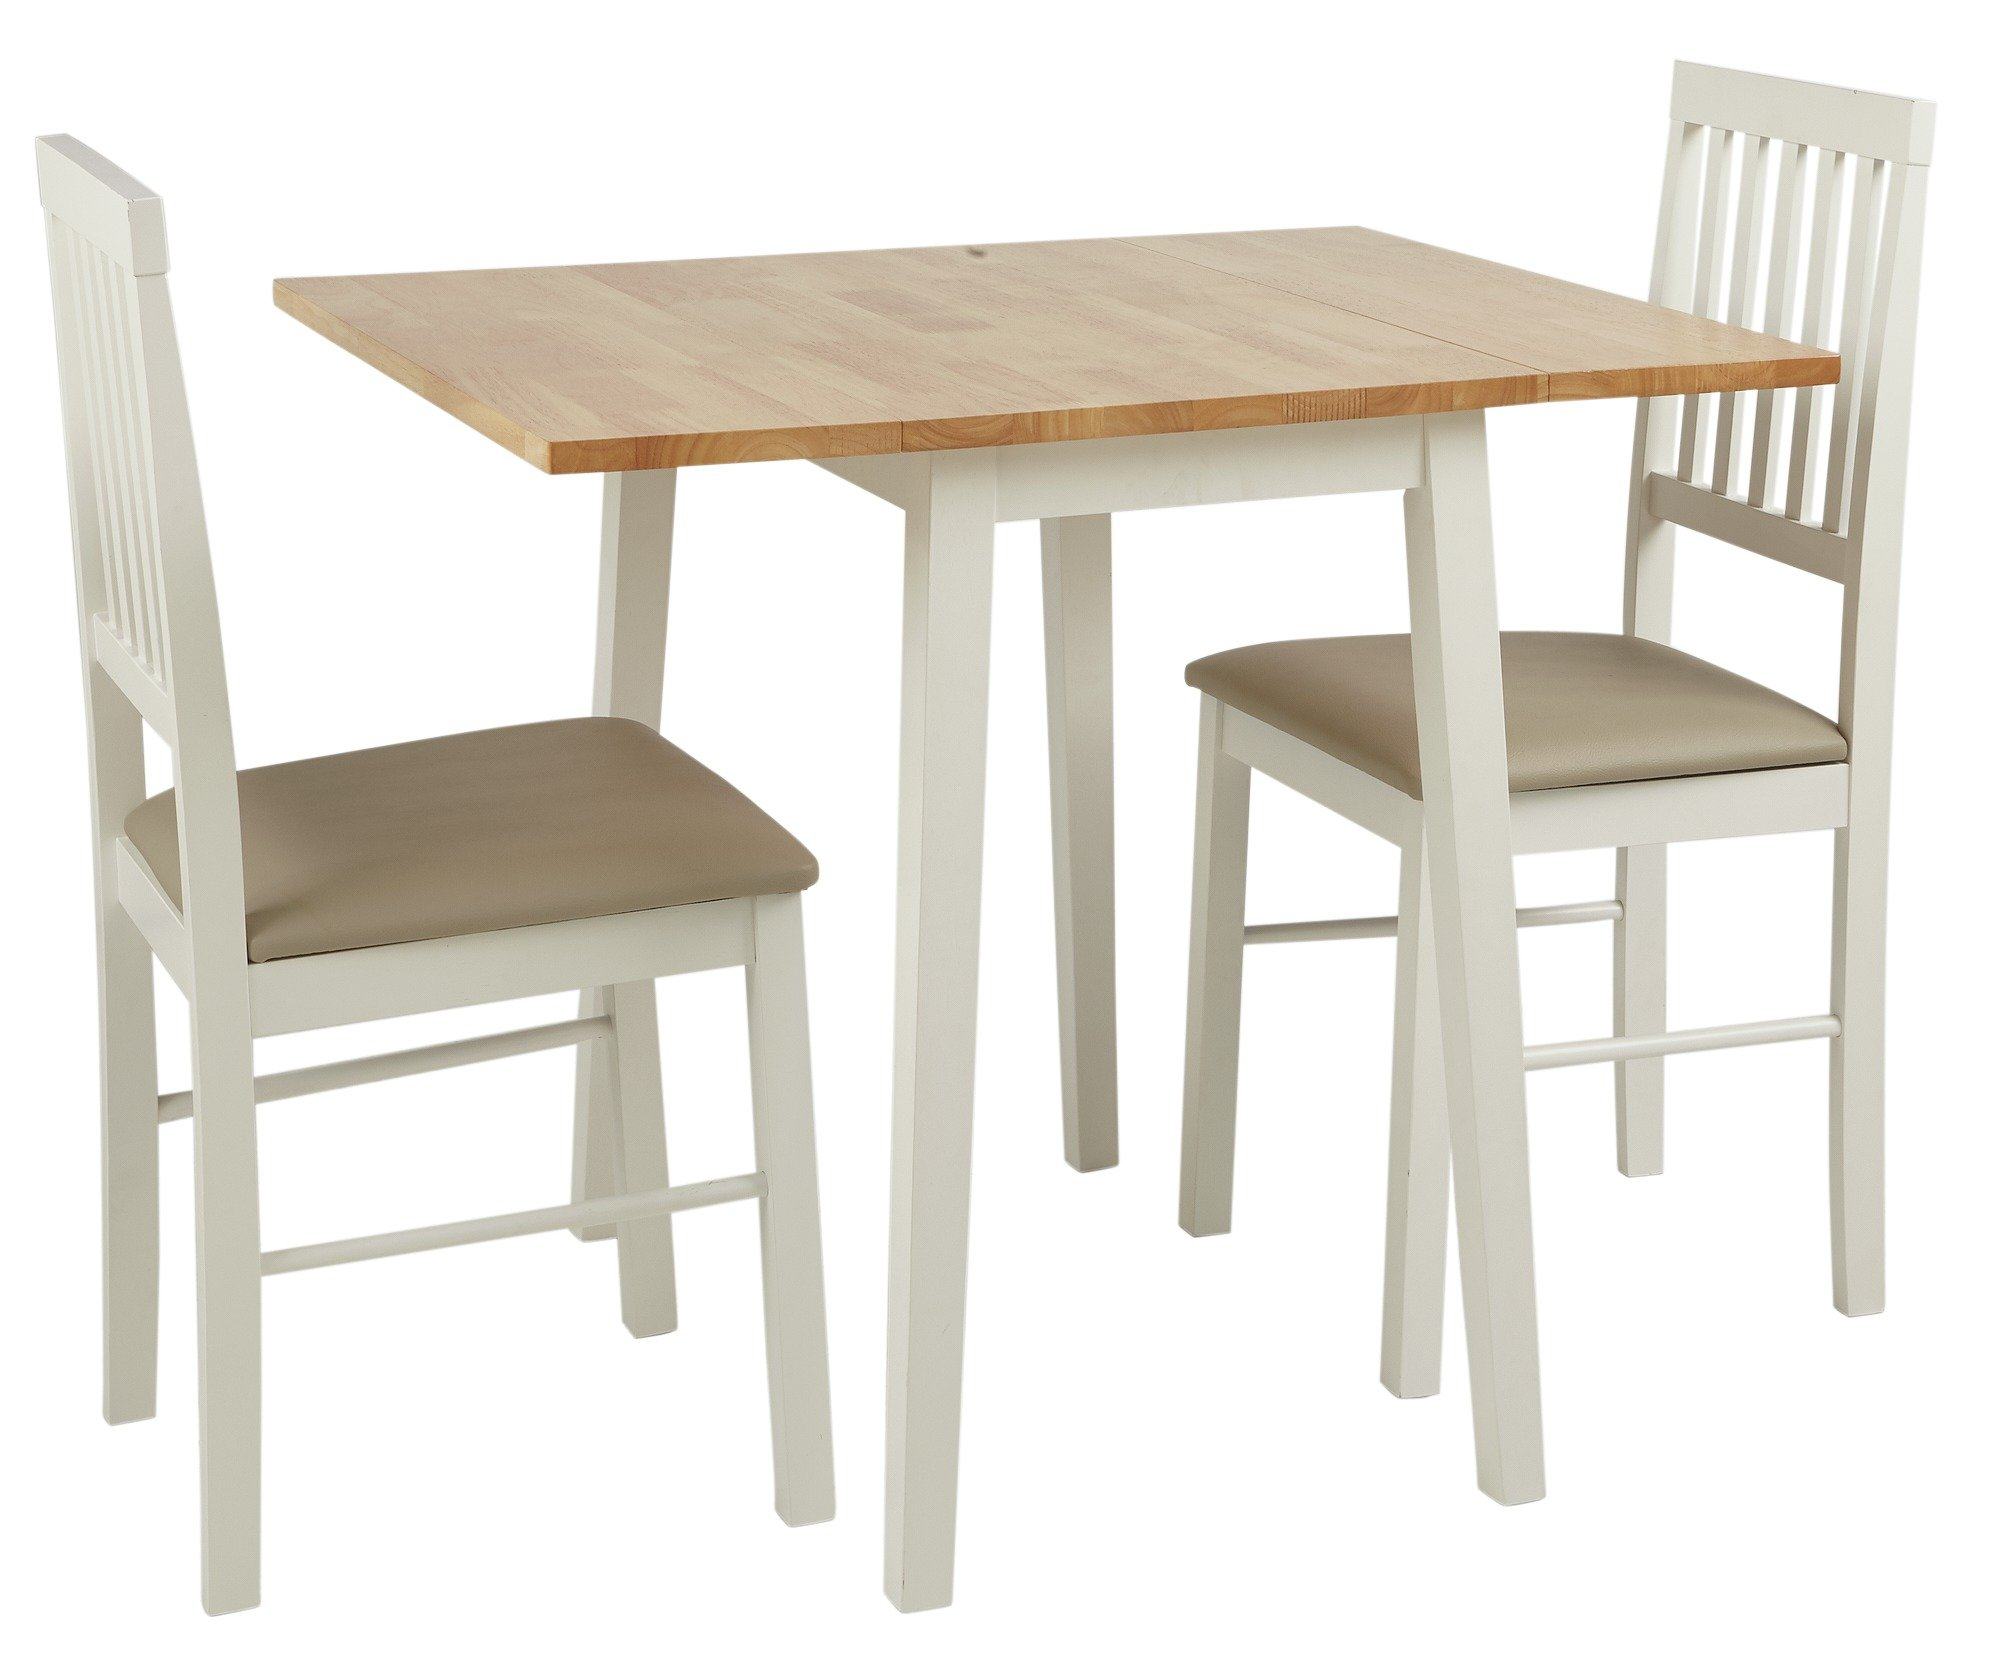 Argos Home Kendal Extendable Wood Table u0026 2 Chairs -Two Tone  sc 1 st  Argos & Clearance Dining Tables u0026 Chairs | Argos